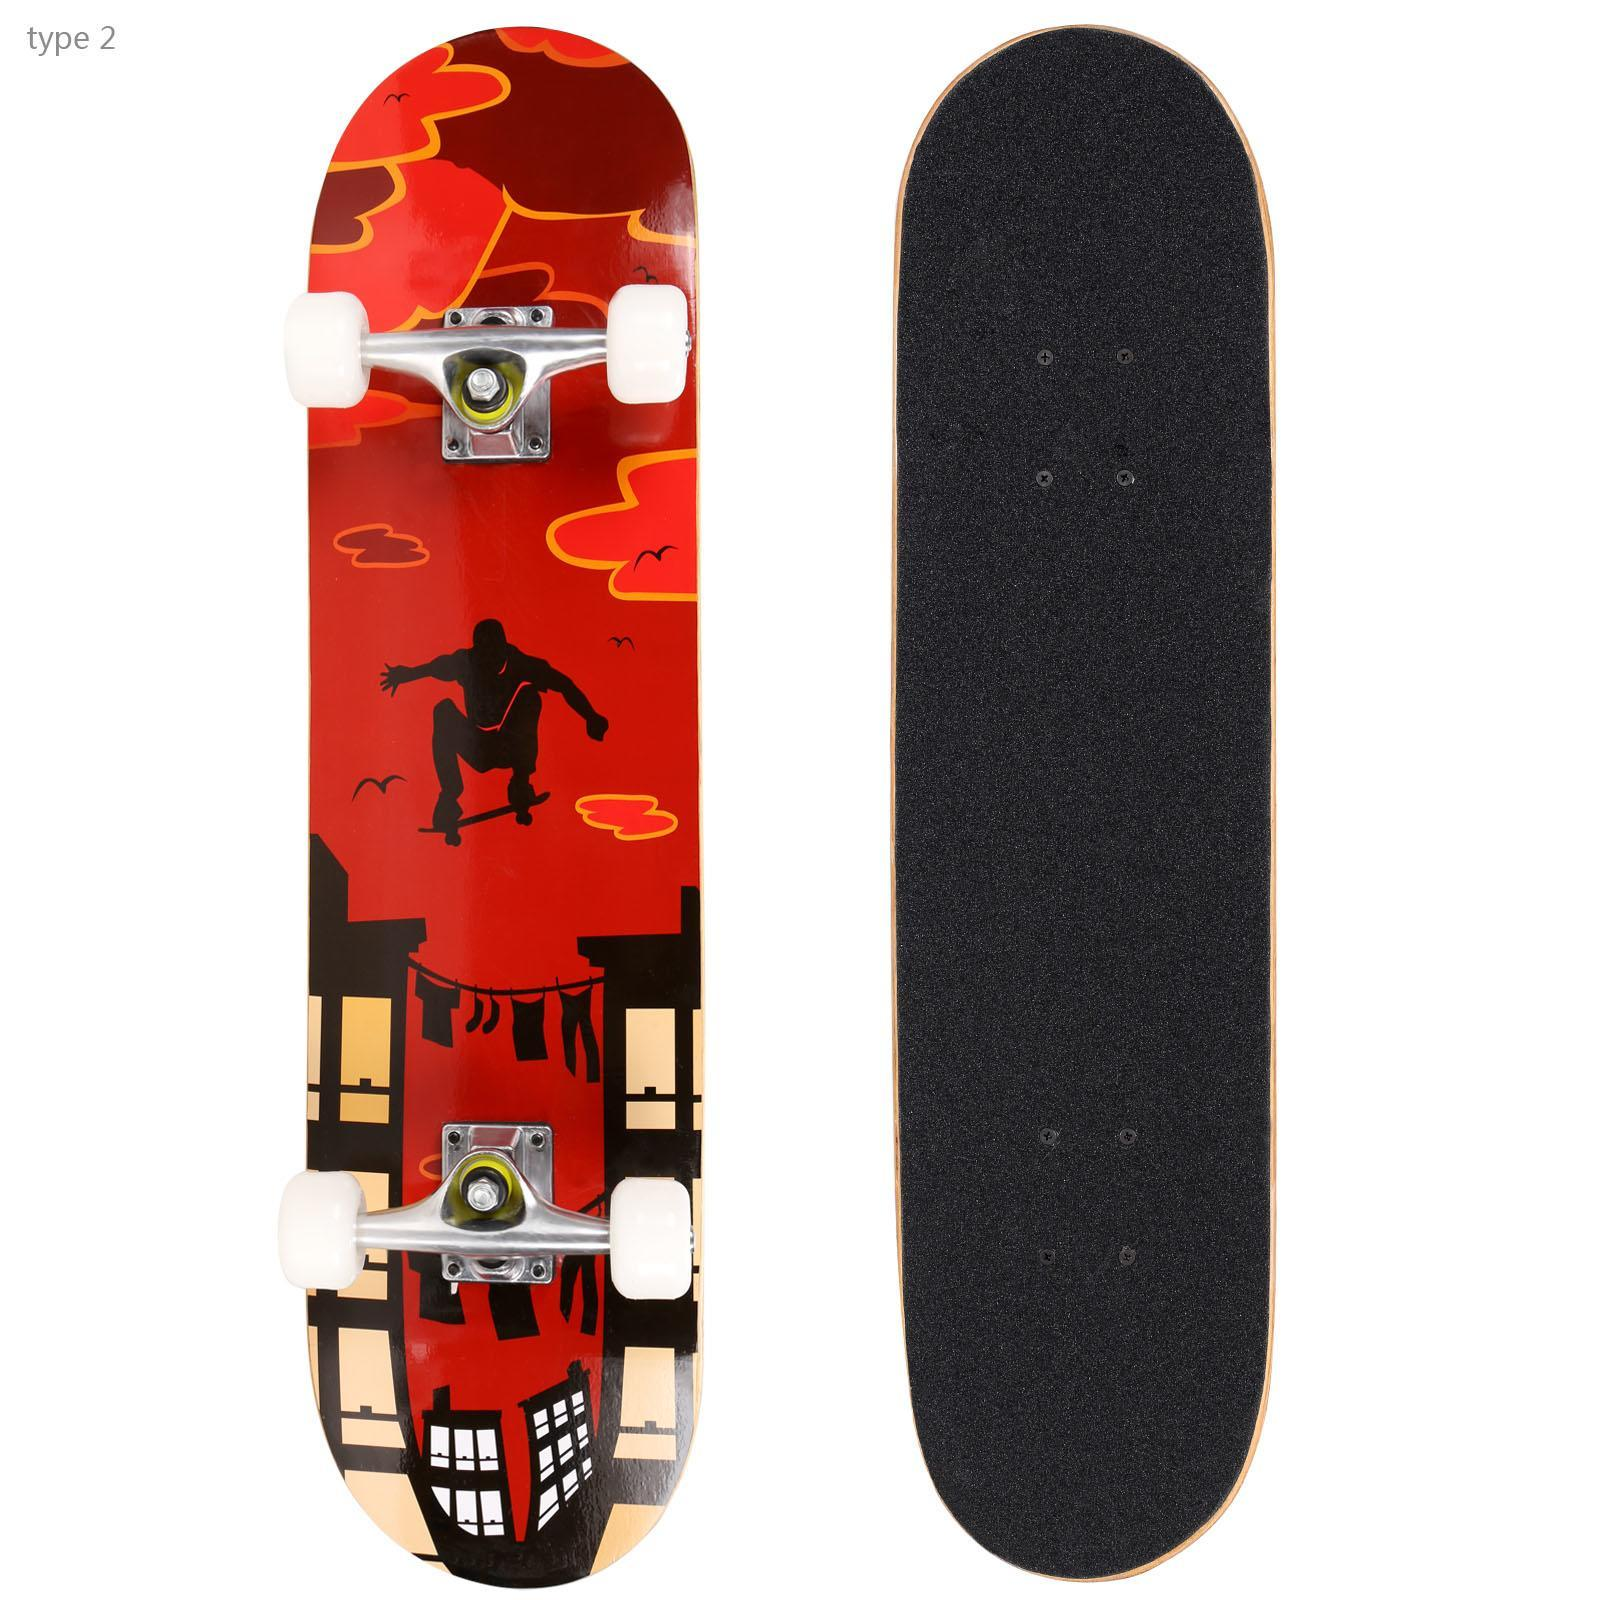 skateboard skate board kinder funboard skater longboard komplettboard ahornholz ebay. Black Bedroom Furniture Sets. Home Design Ideas